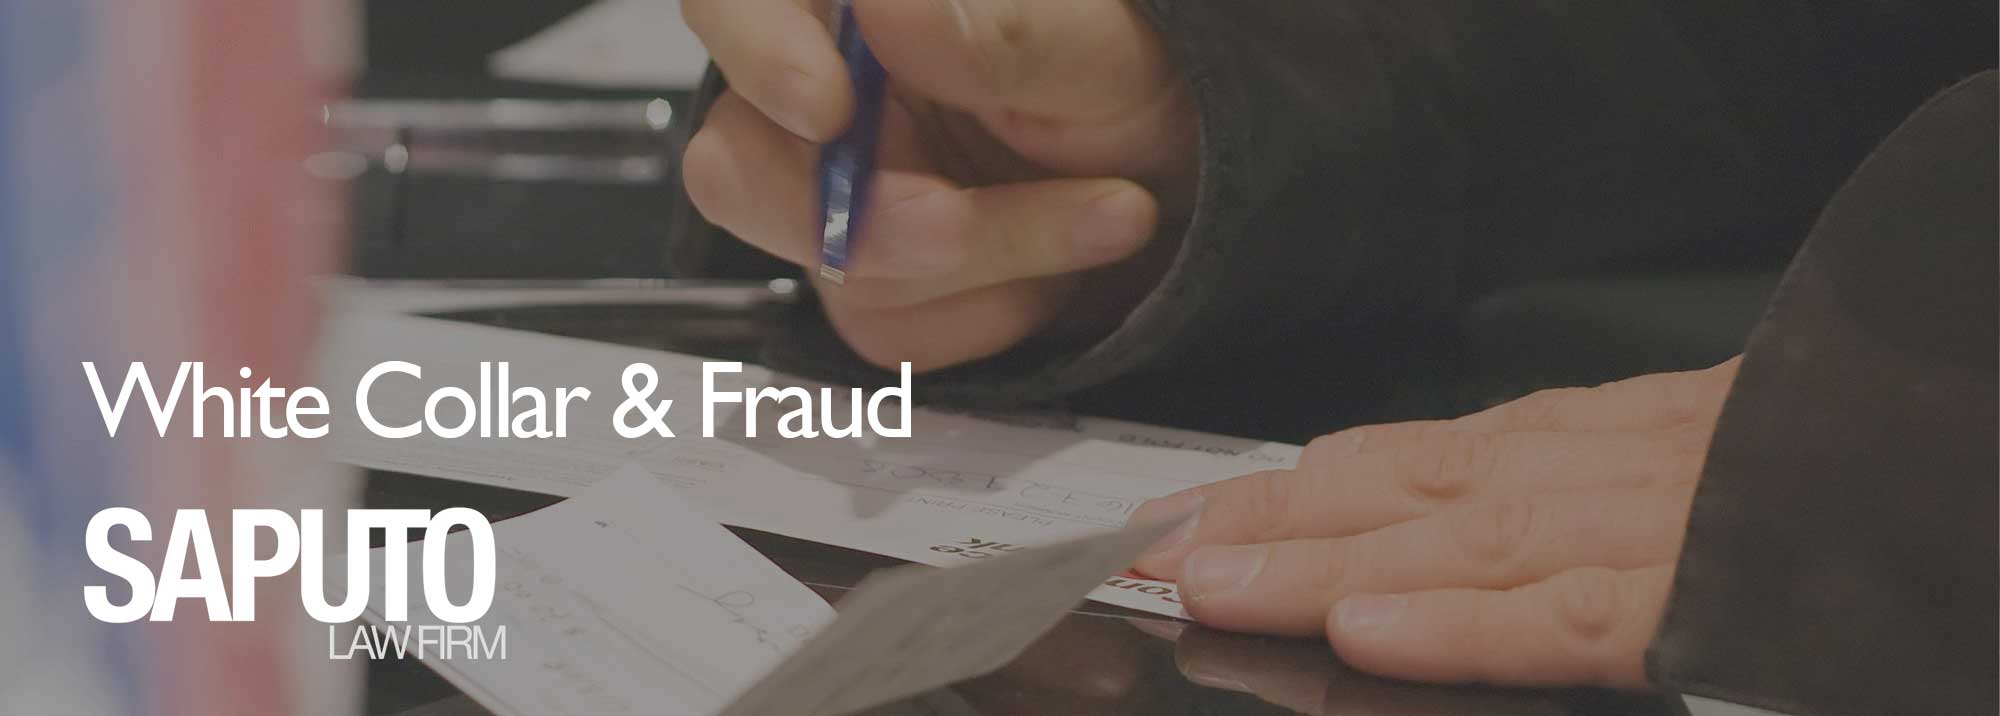 White Collar & Fraud Defense Lawyer Graphic